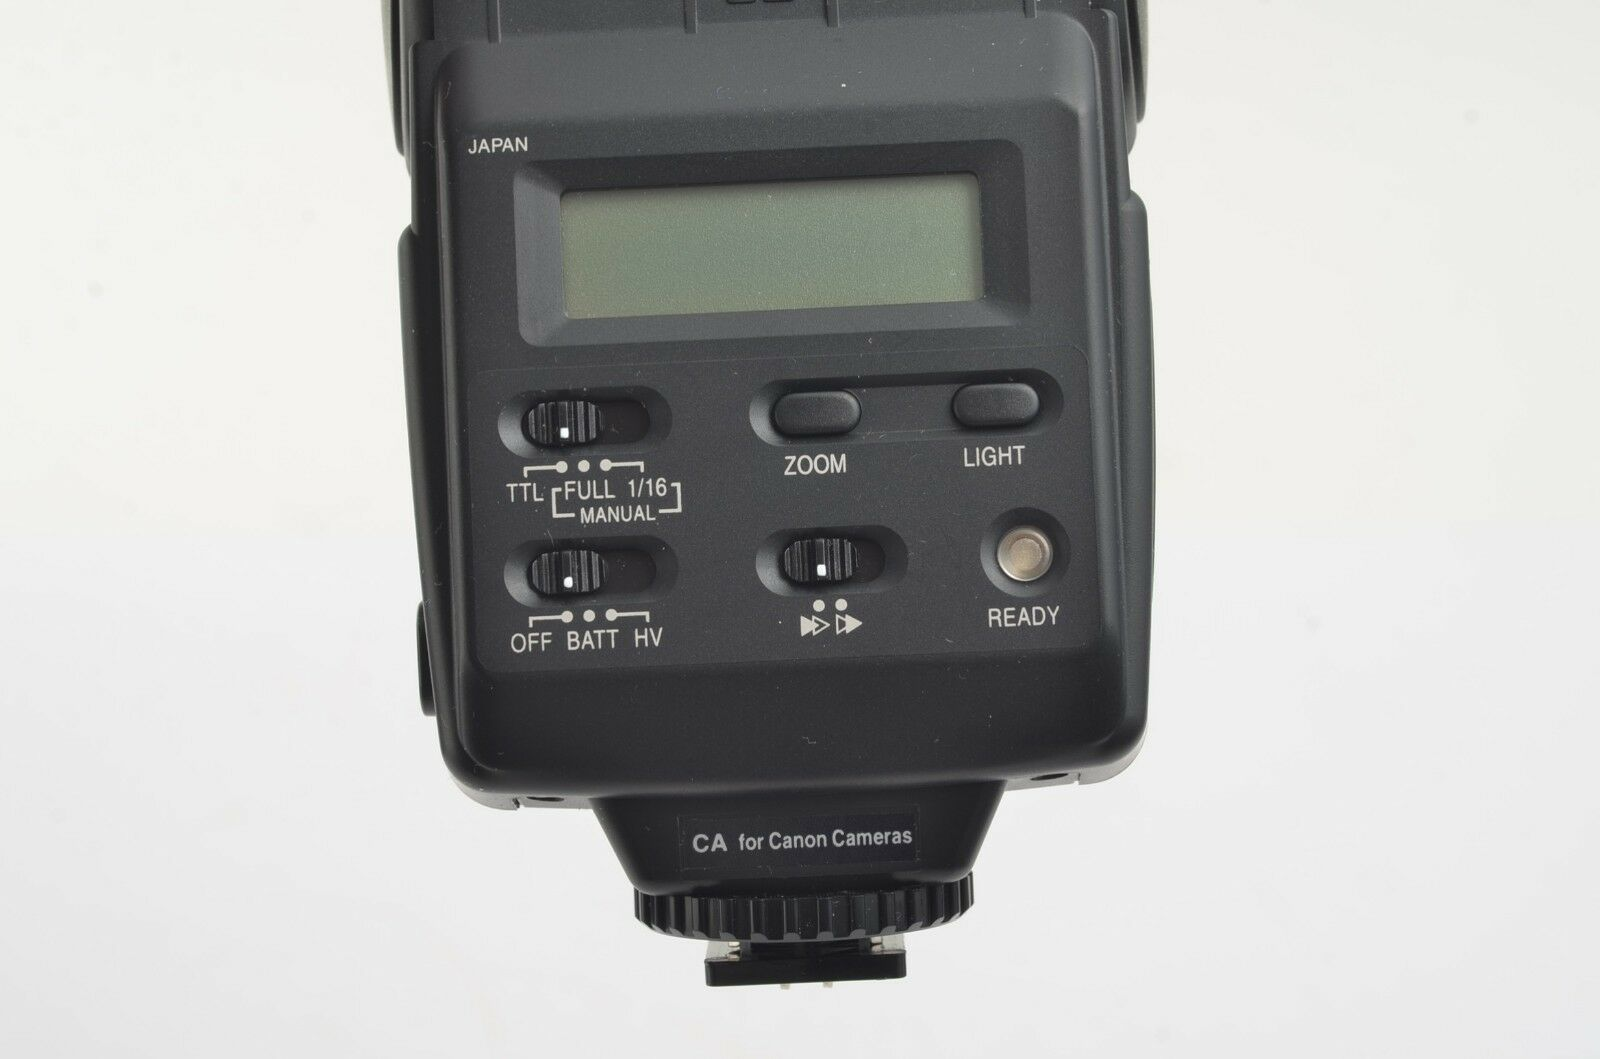 EXC SUNPAK 4000AF FOR CANON AF FLASH, NEOPRENE CASE, TESTED CLEAN - $27.95